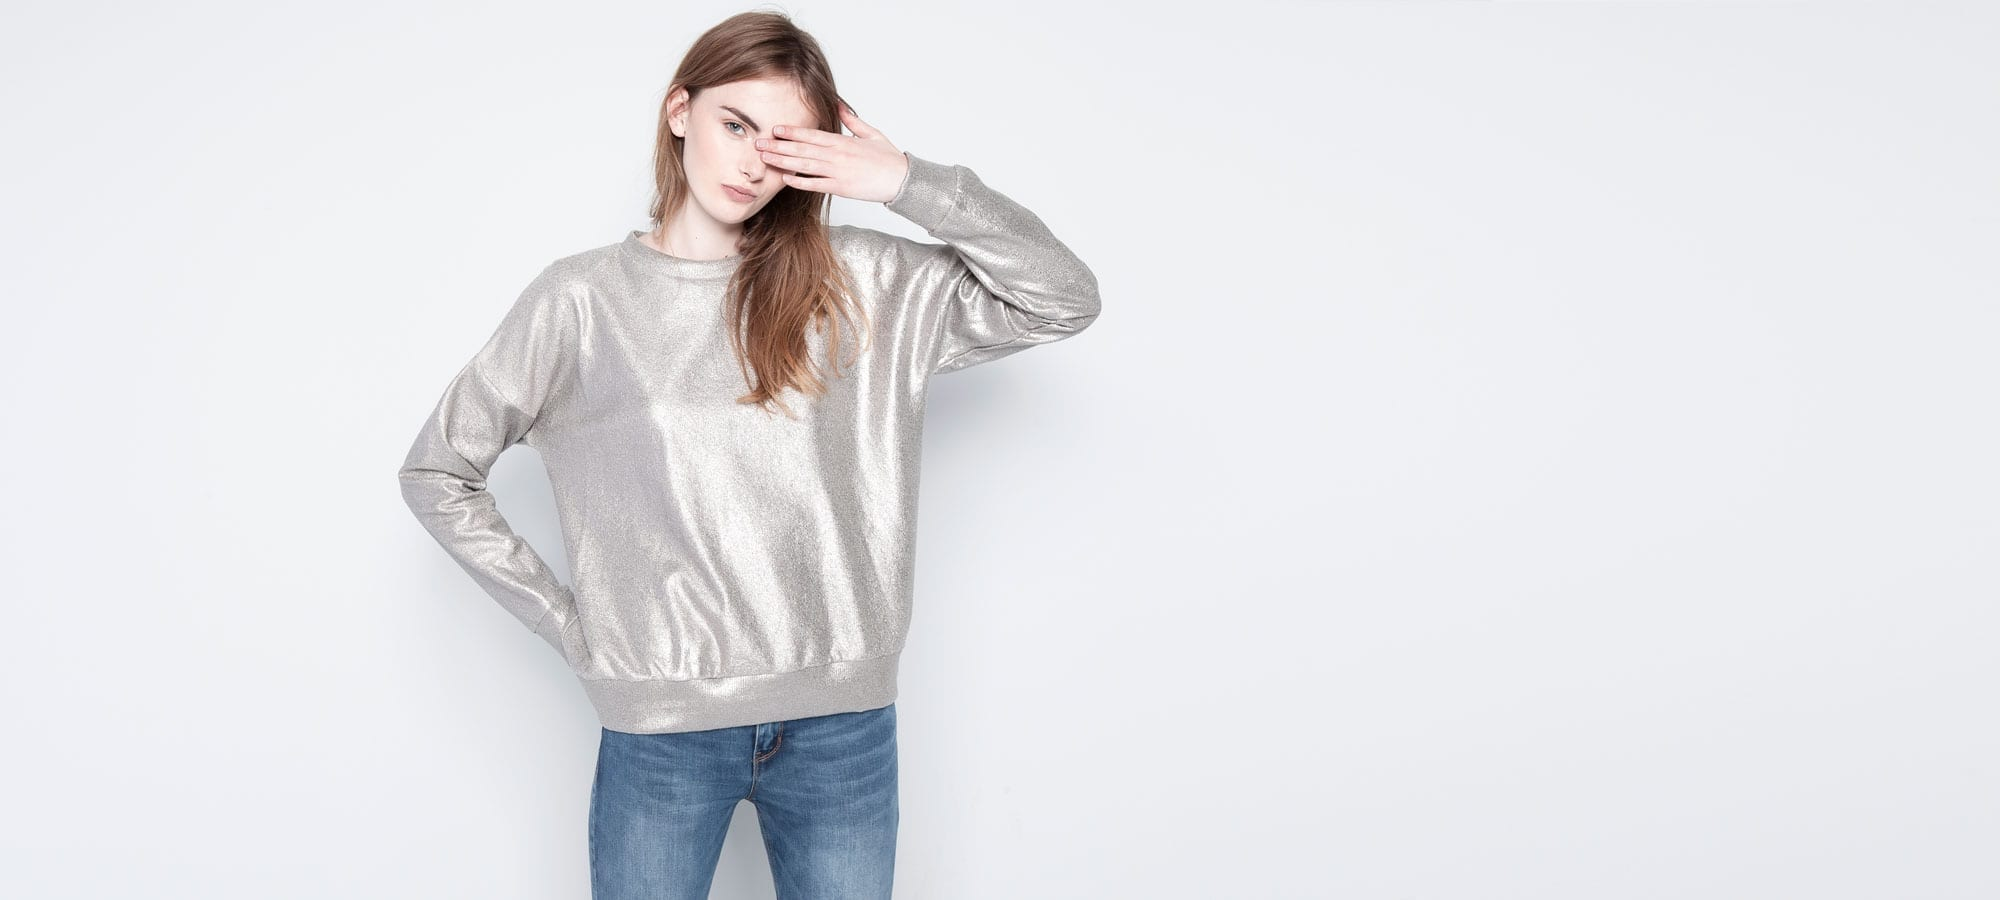 must have low cost, Pull&Bear,Zaino Topshop,Ecopelliccia H&M, fashion must have, fall winter 2015 fashion trends, elisa bellino, theladycracy, bascket